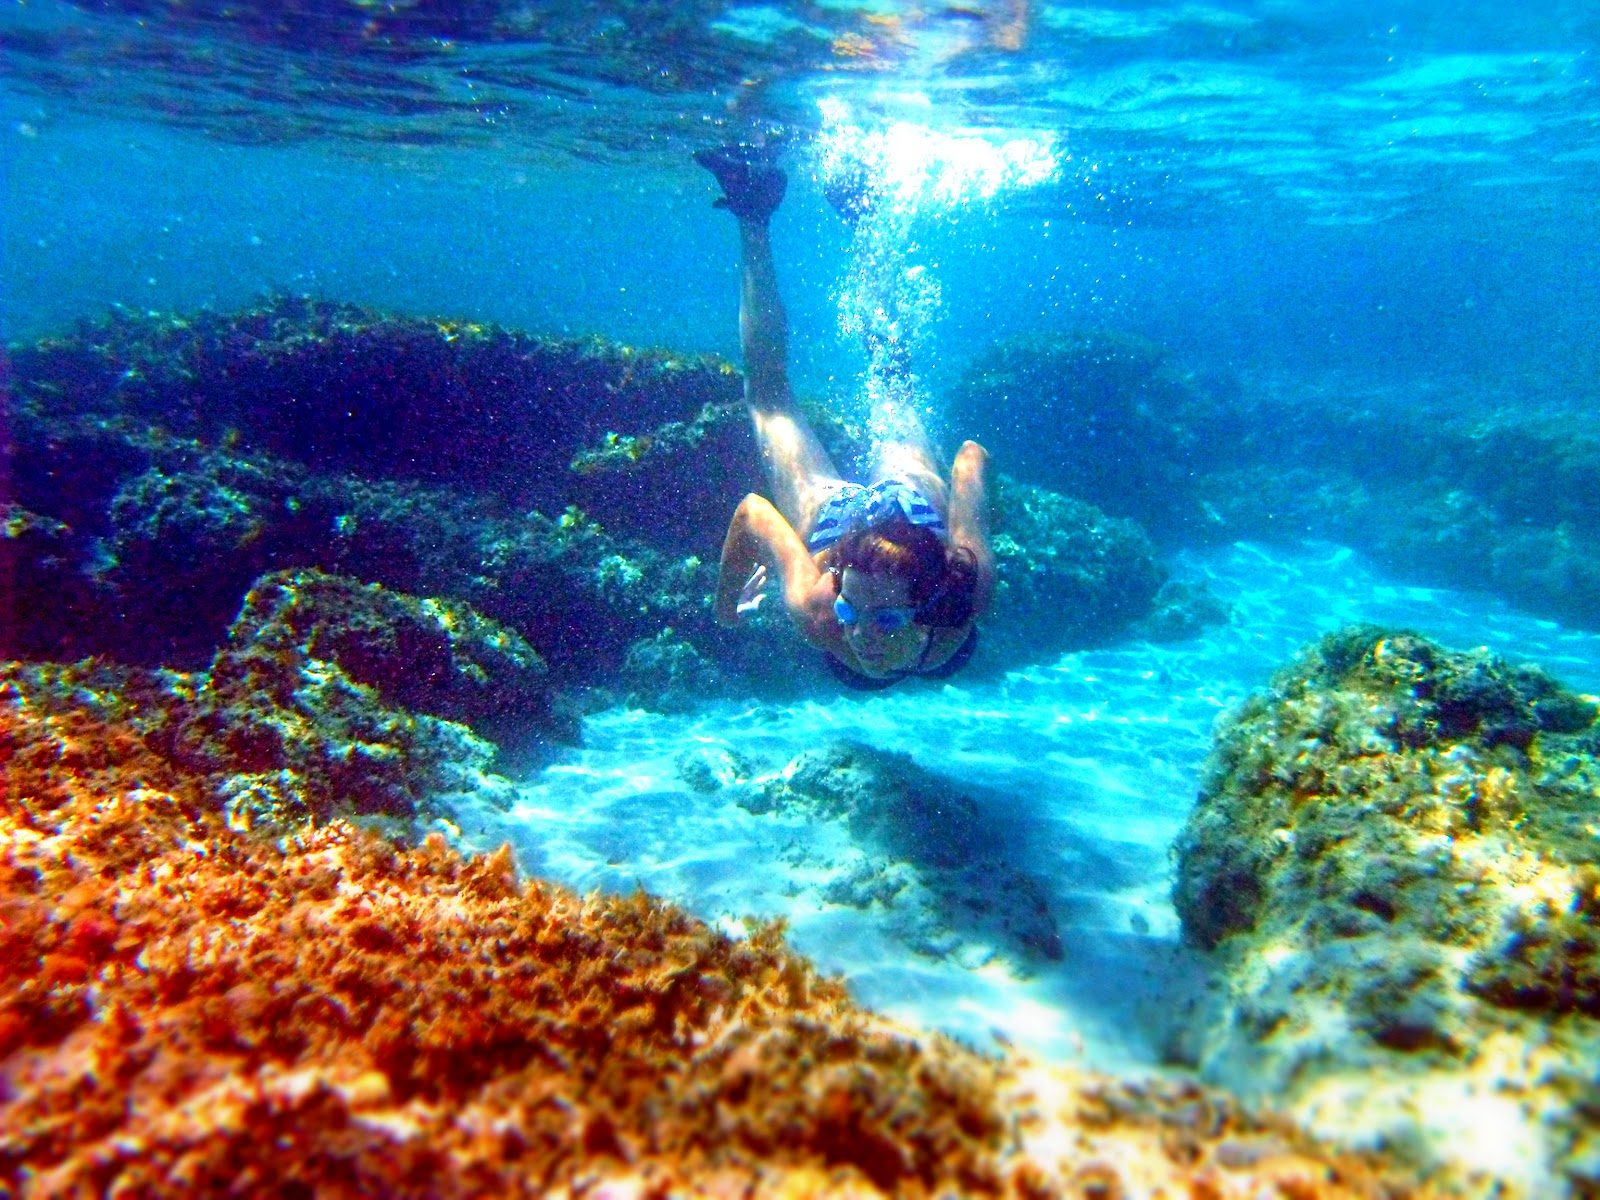 http://s-fashion-avenue.blogspot.it/2012/09/my-summer-underwater.html